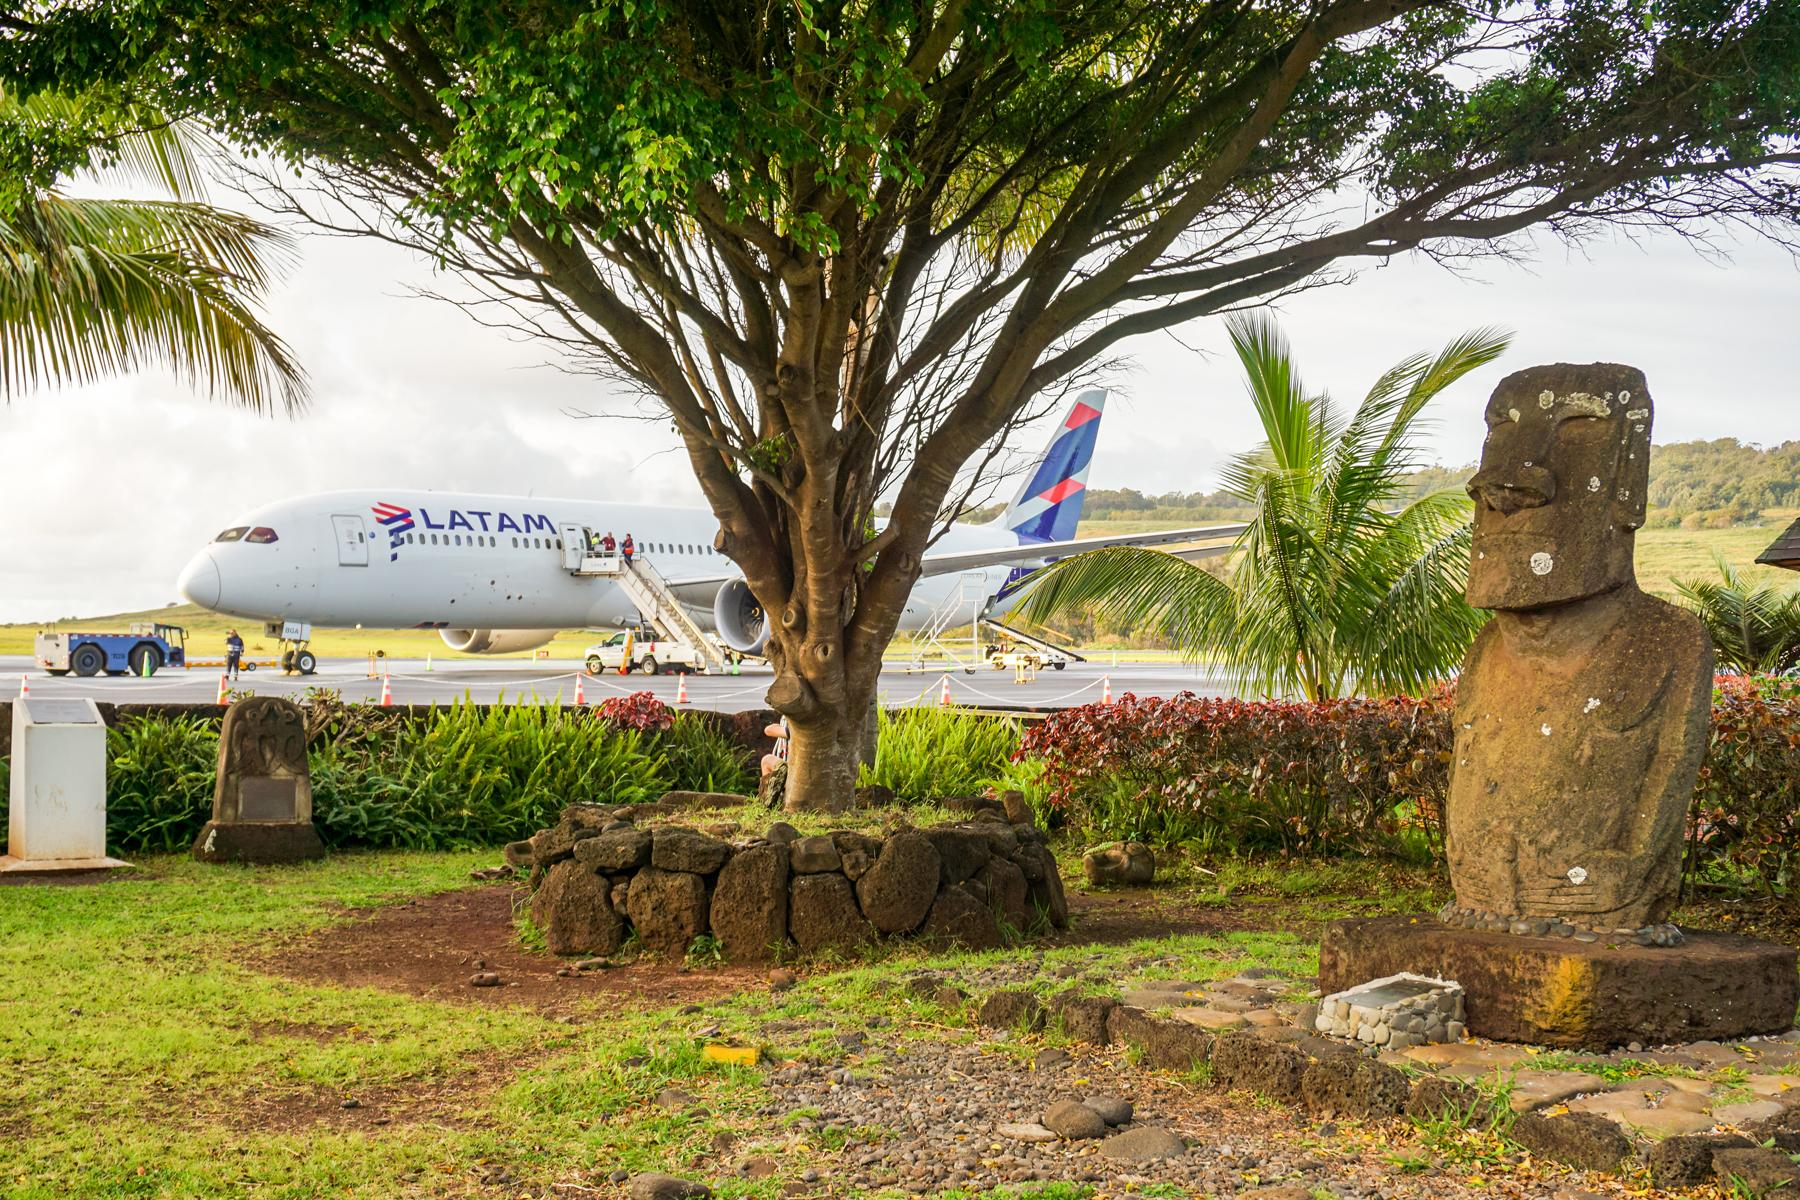 The Inside Story of How LATAM Flew Passengers From Easter Island to